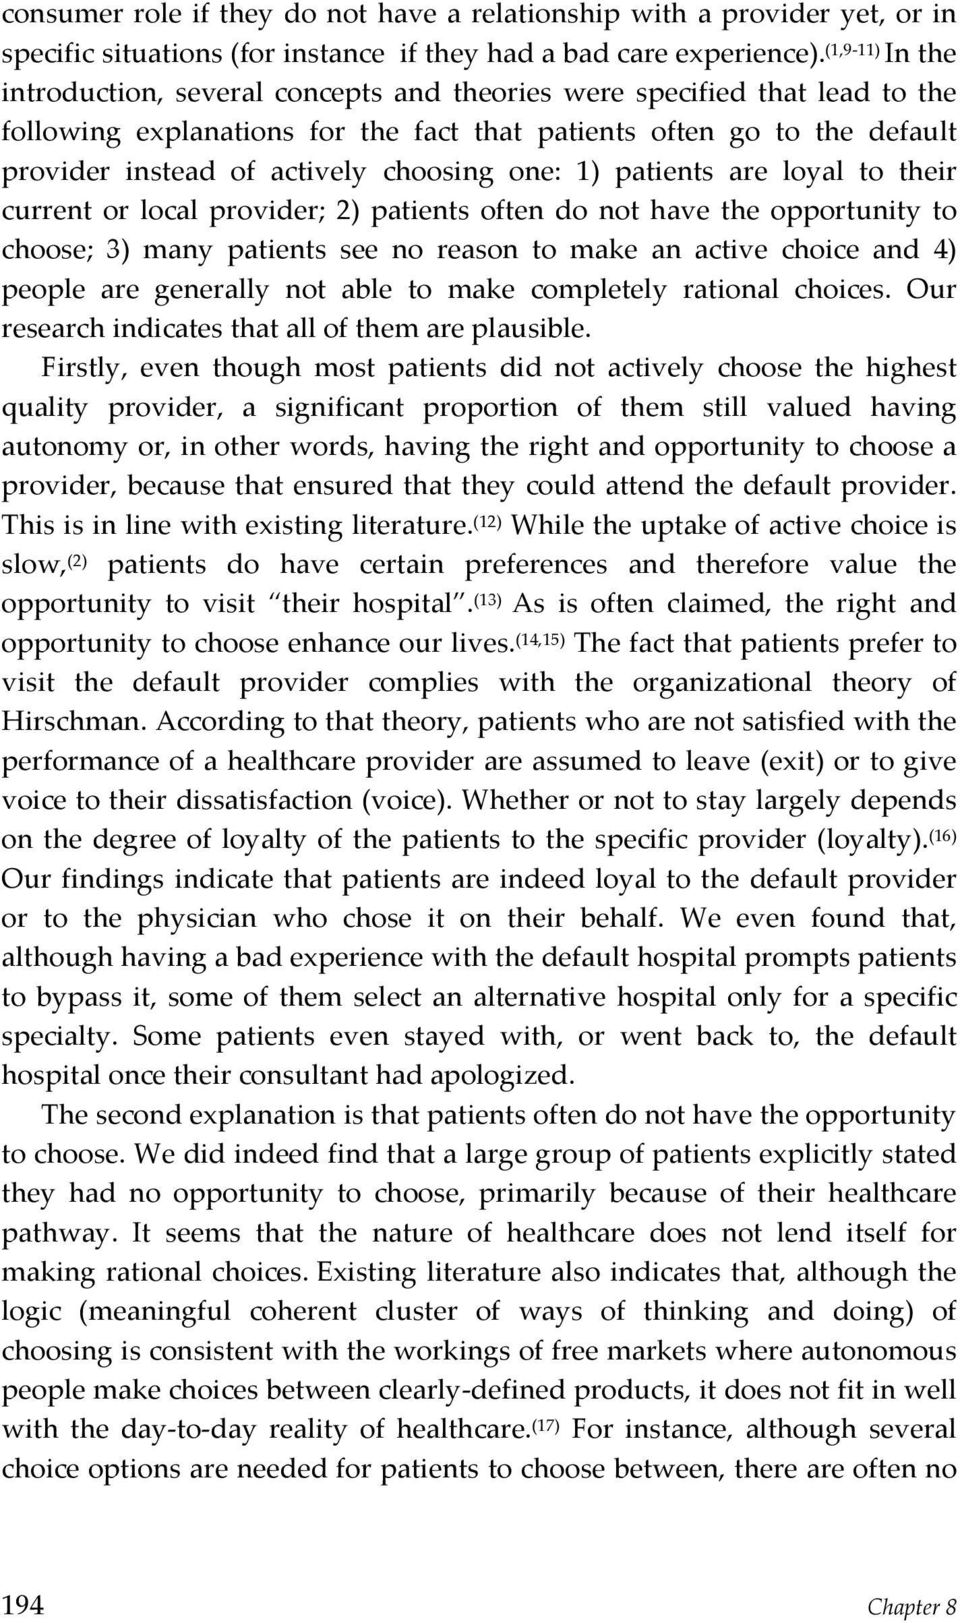 choosing one: 1) patients are loyal to their current or local provider; 2) patients often do not have the opportunity to choose; 3) many patients see no reason to make an active choice and 4) people